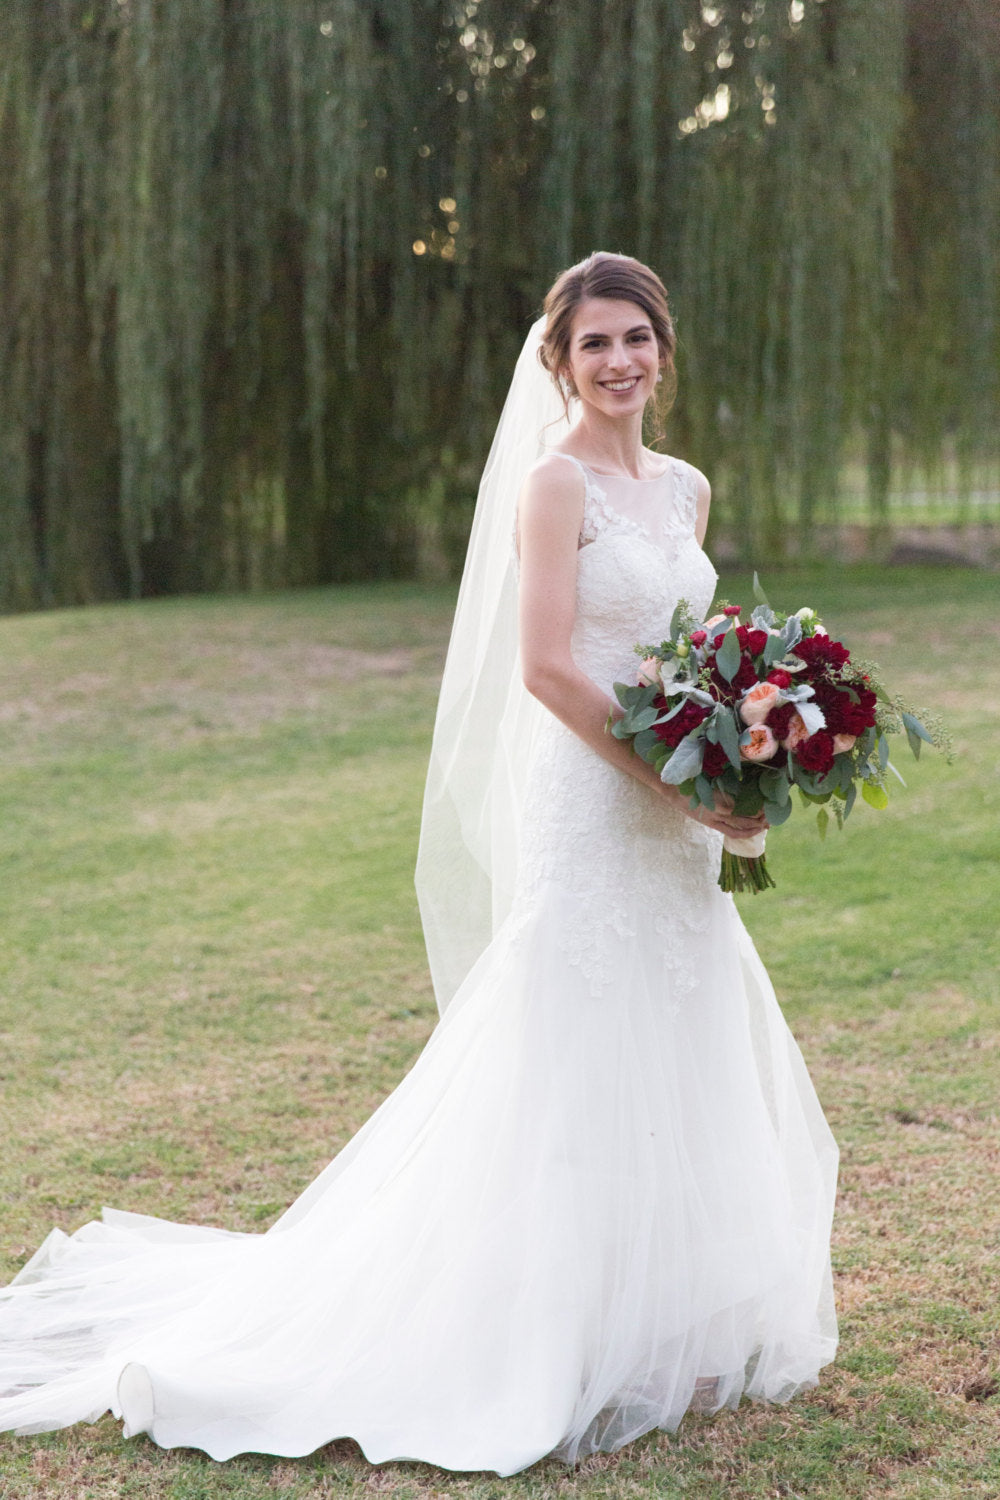 waltz length veil and lace wedding dress